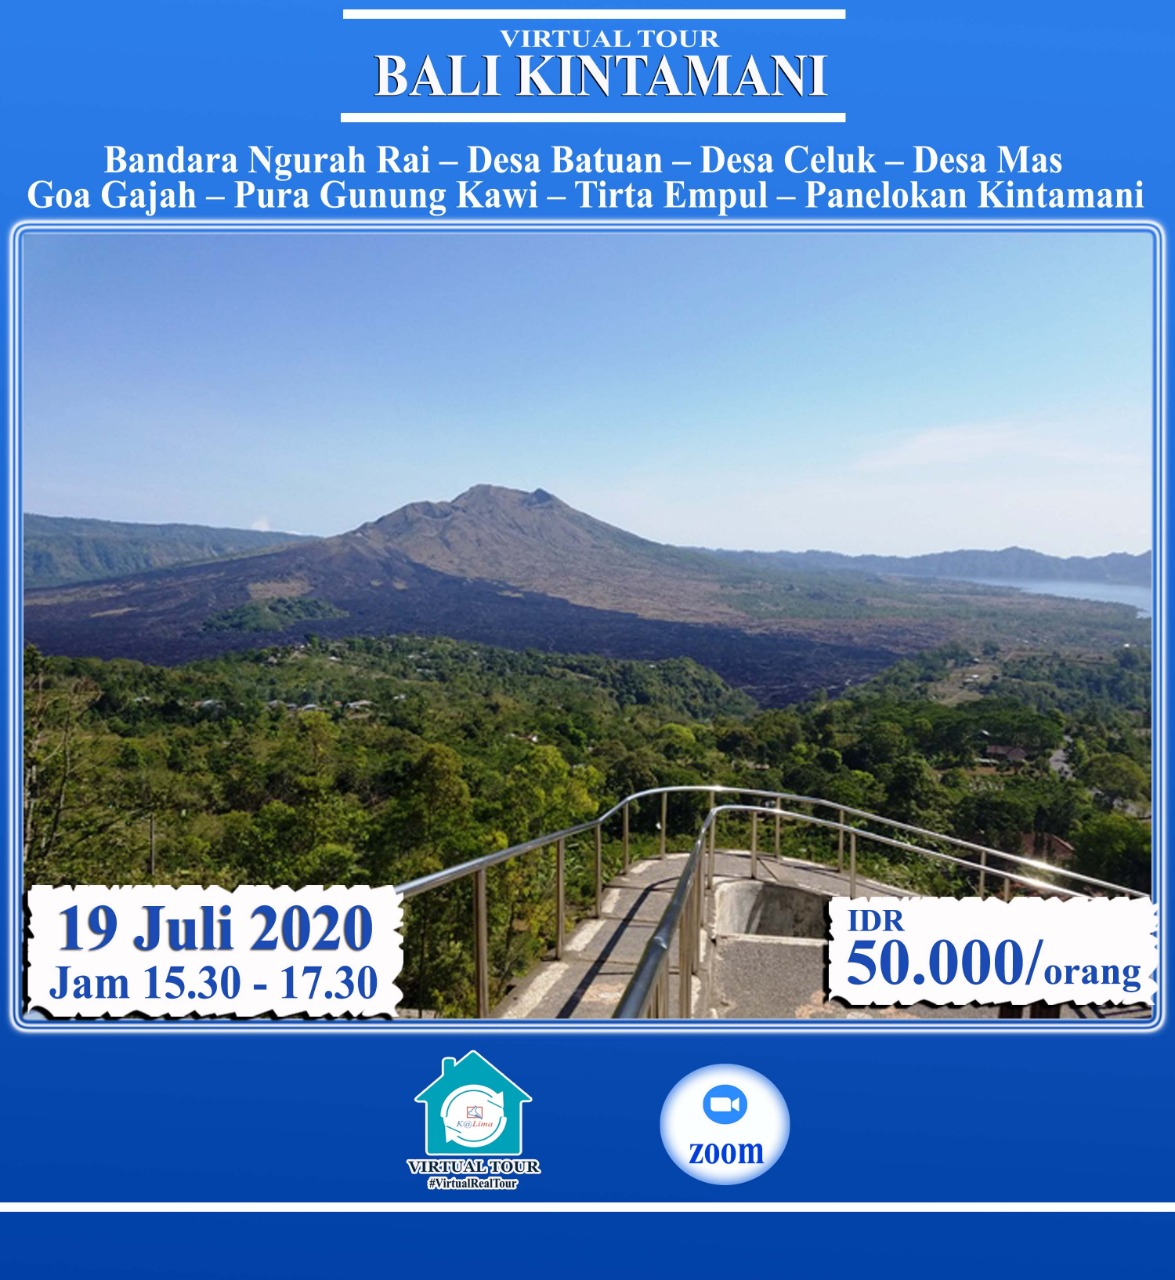 Virtual Tour Bali Kintamani